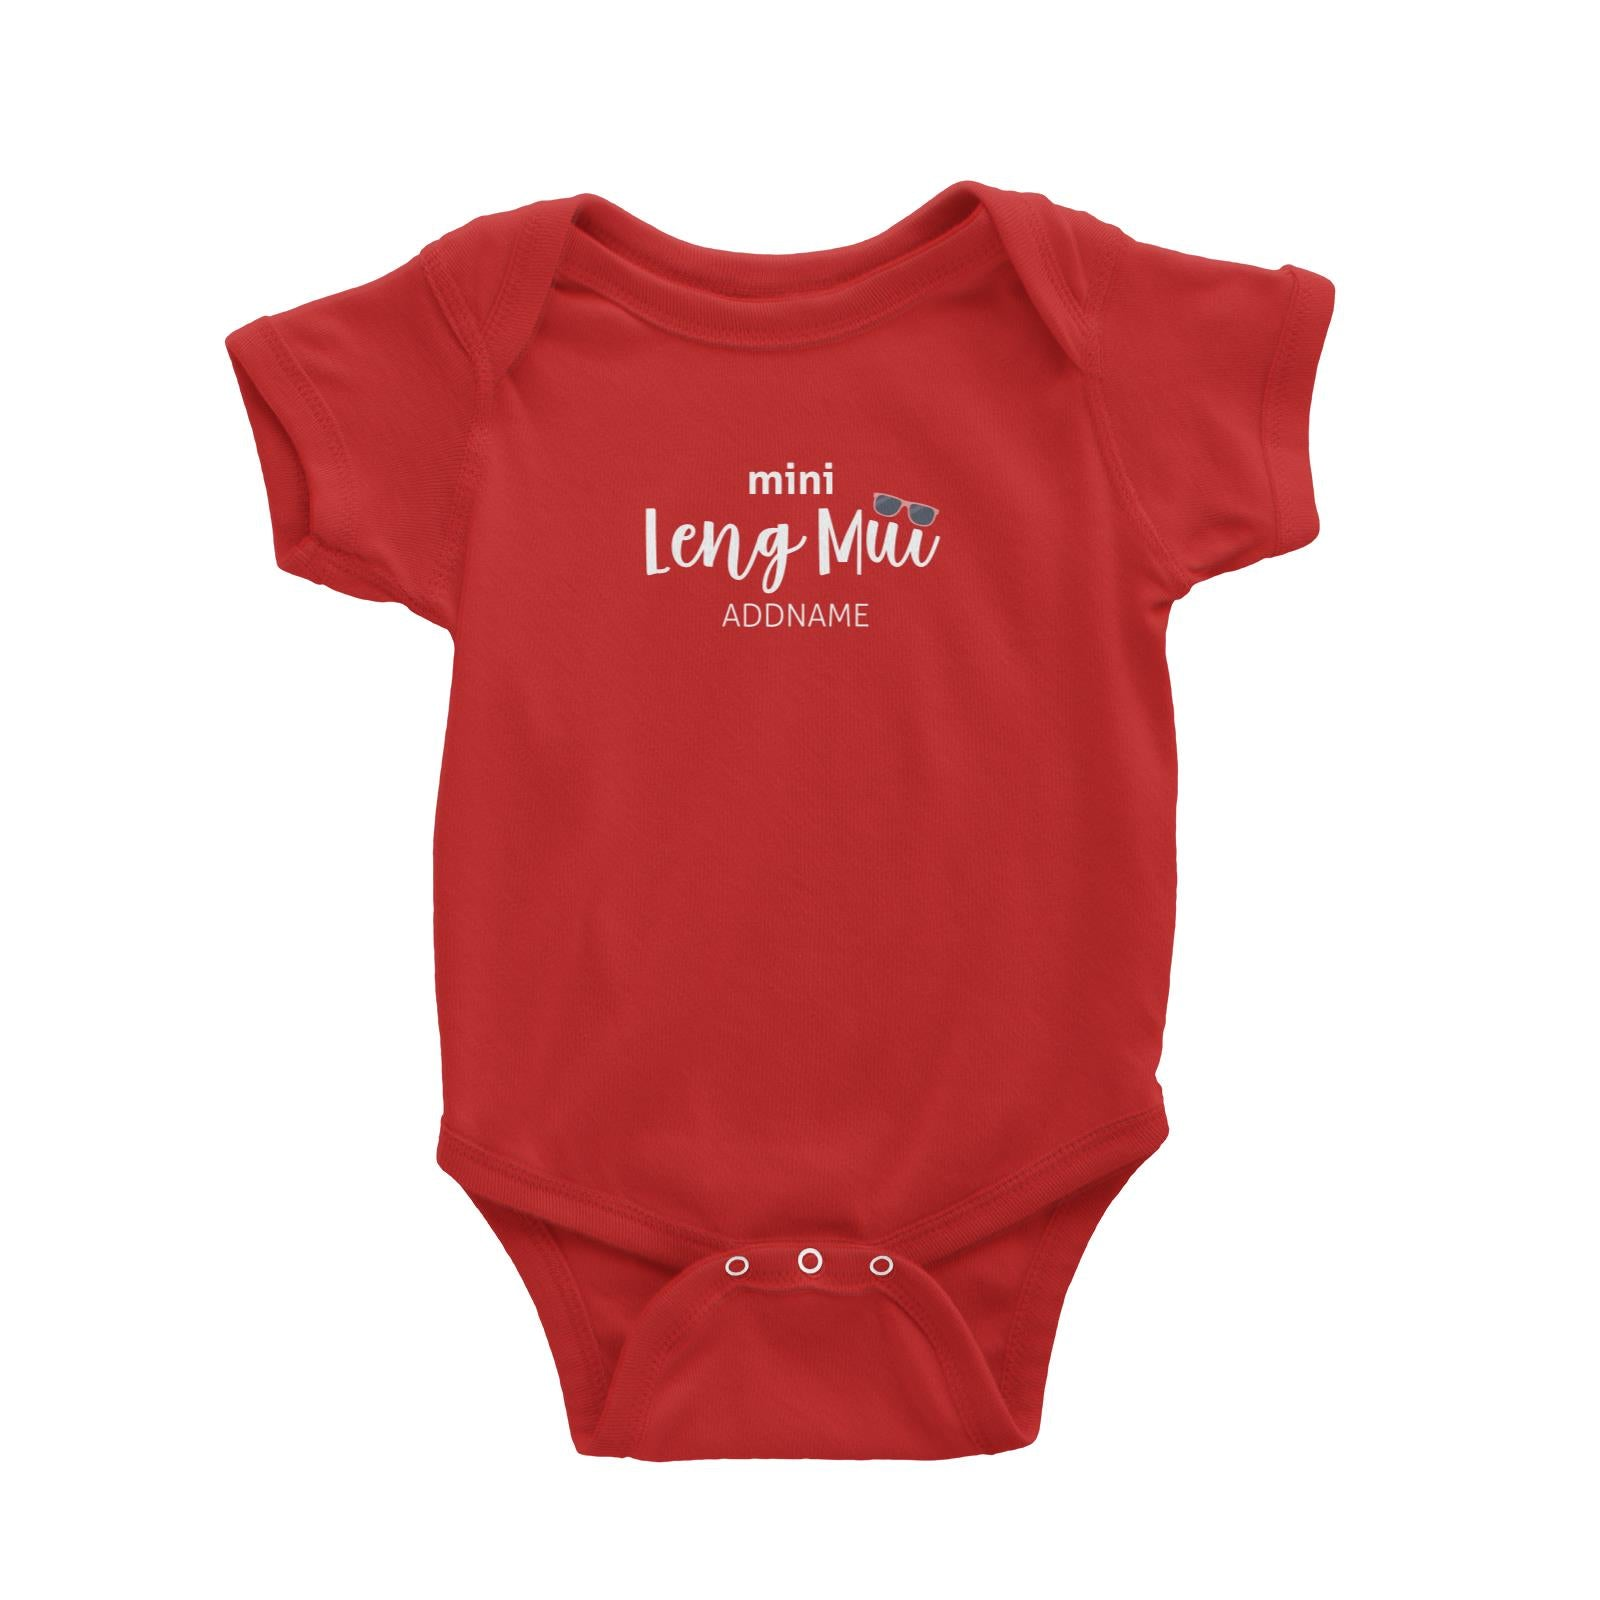 Mini Leng Mui with Sunnies Baby Romper